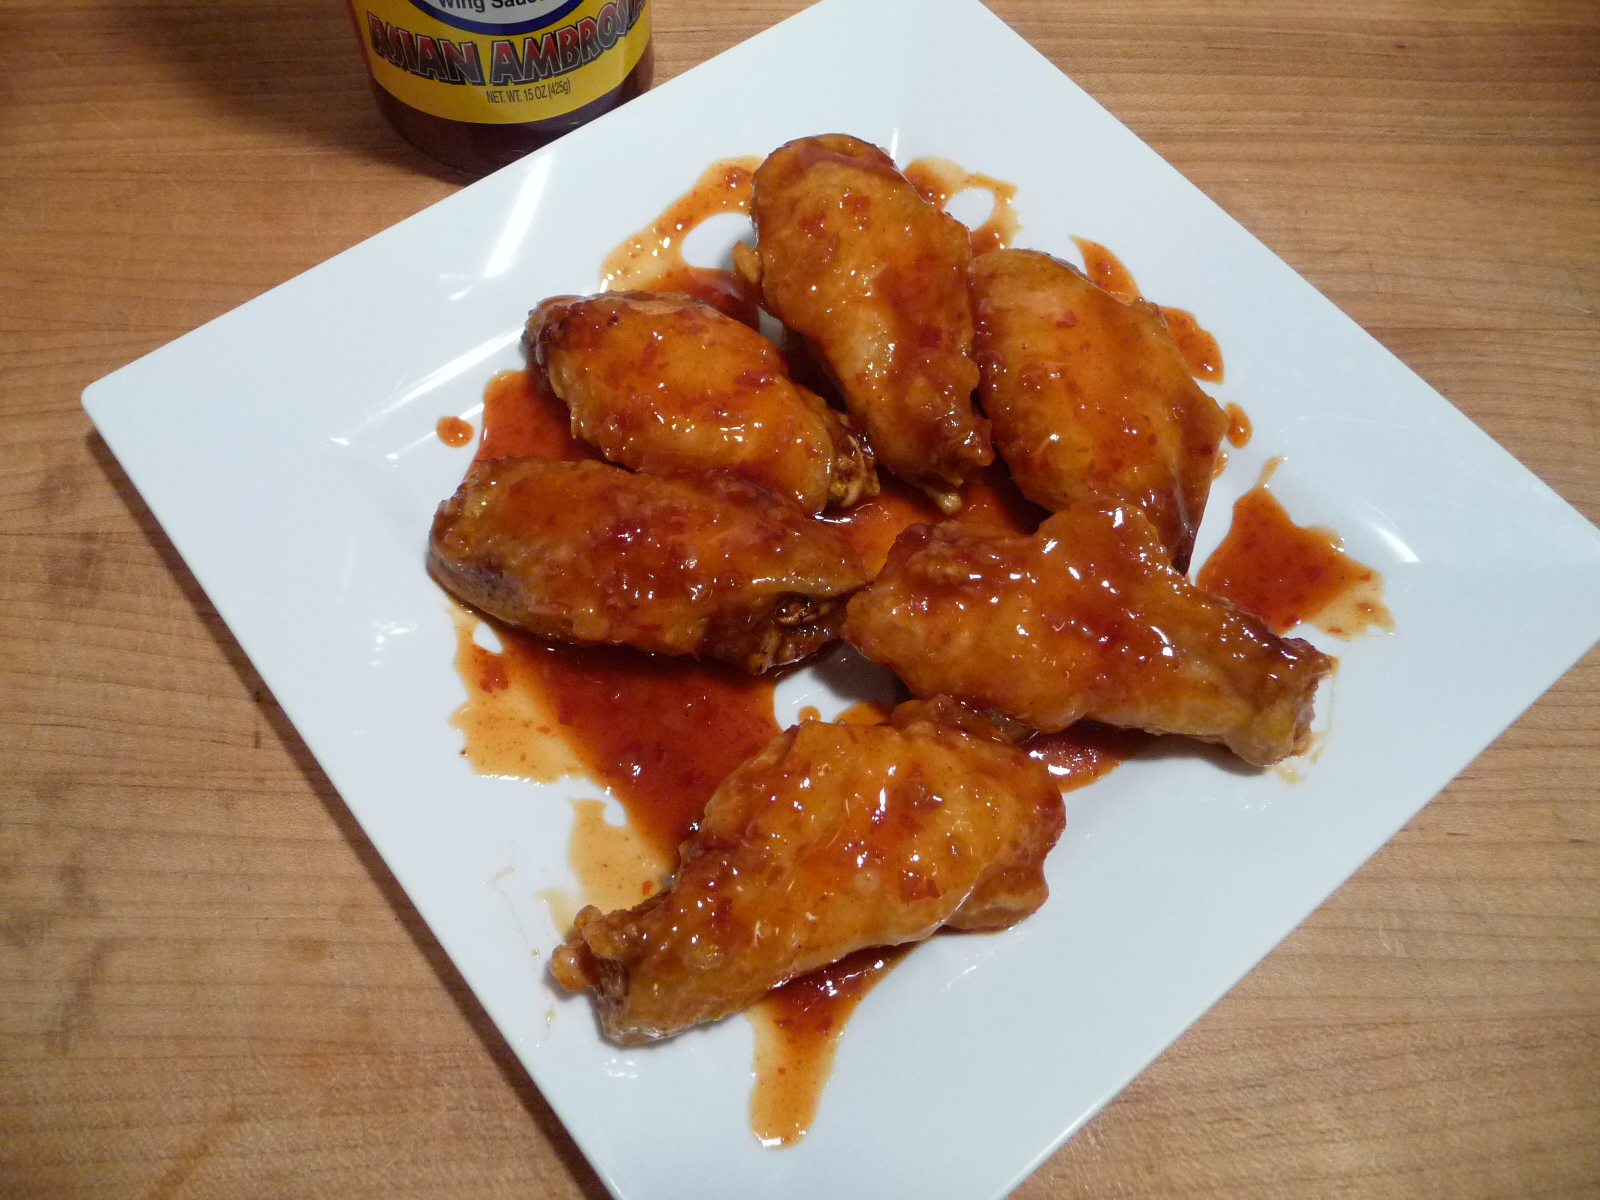 Wy's Asian Ambrosia wings finished